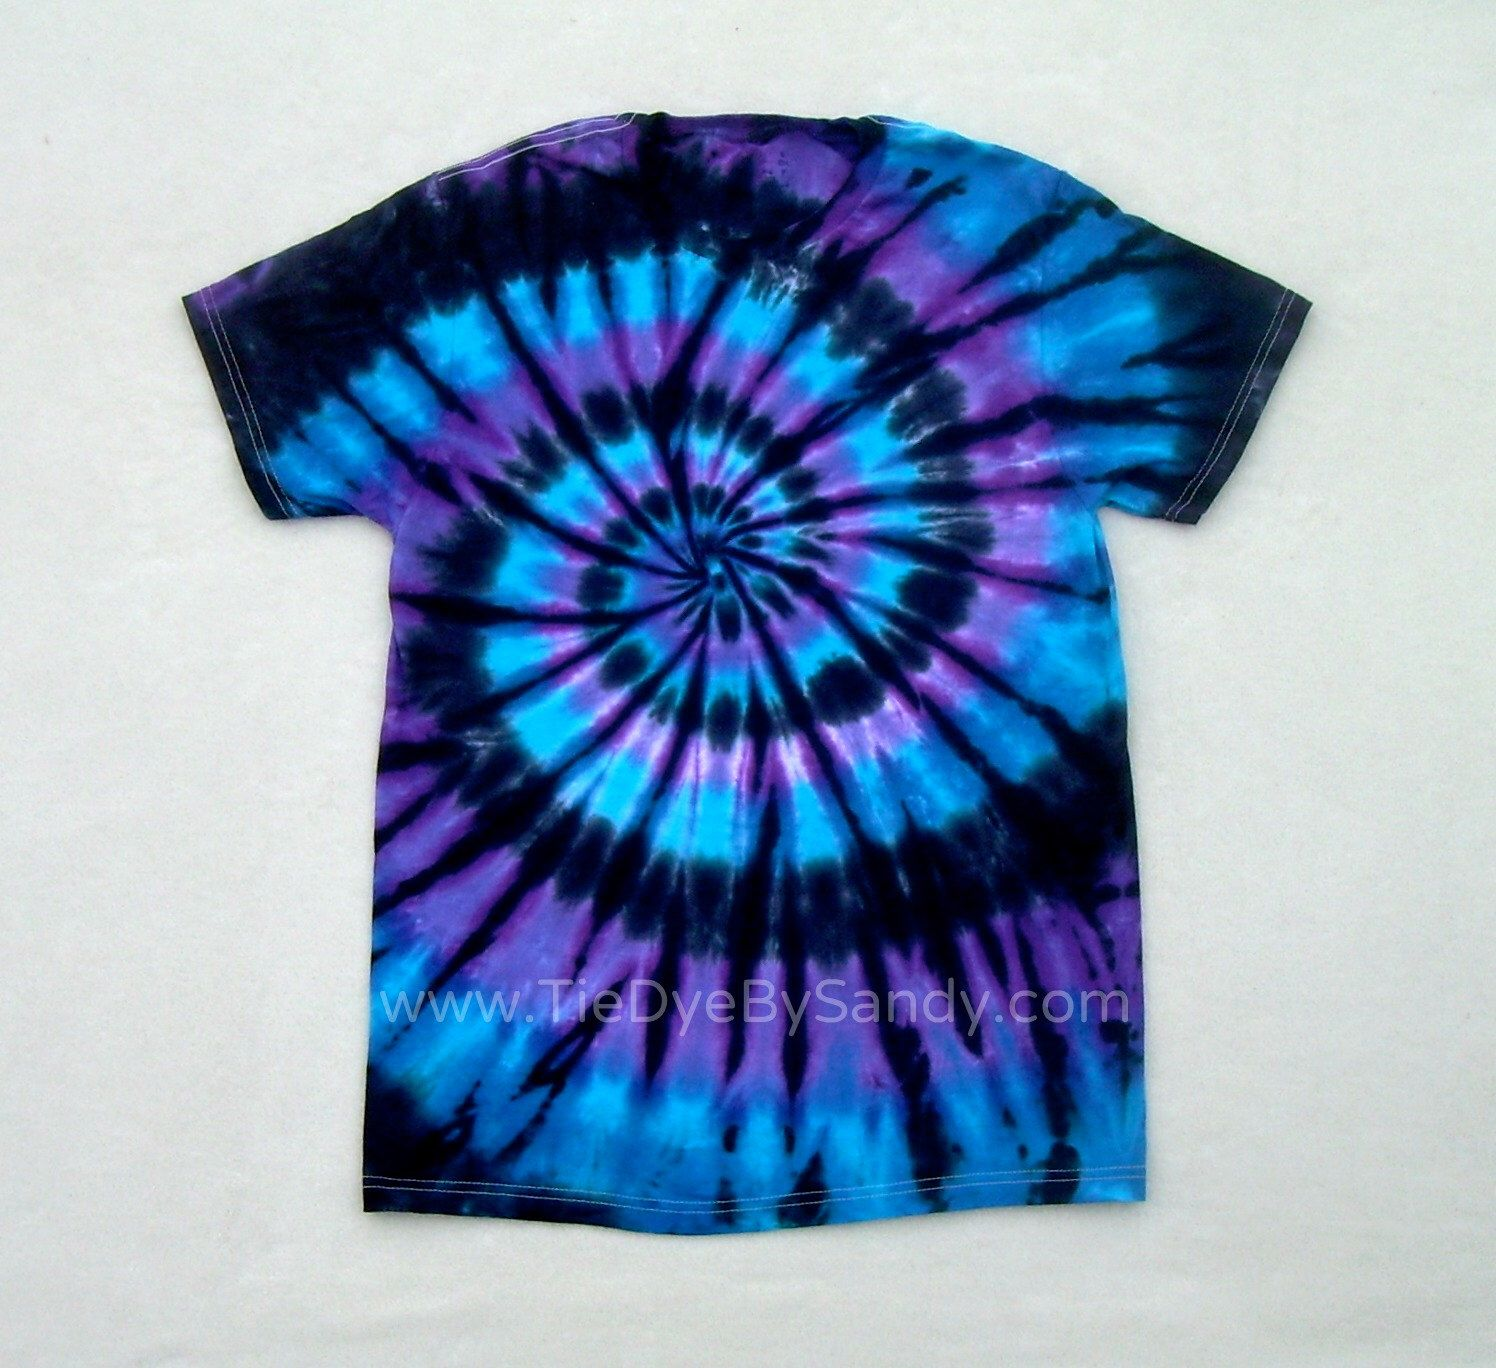 Tie Dye Shirt Moon Shadow Spiral Blue Purple Black Tie Dye Tie